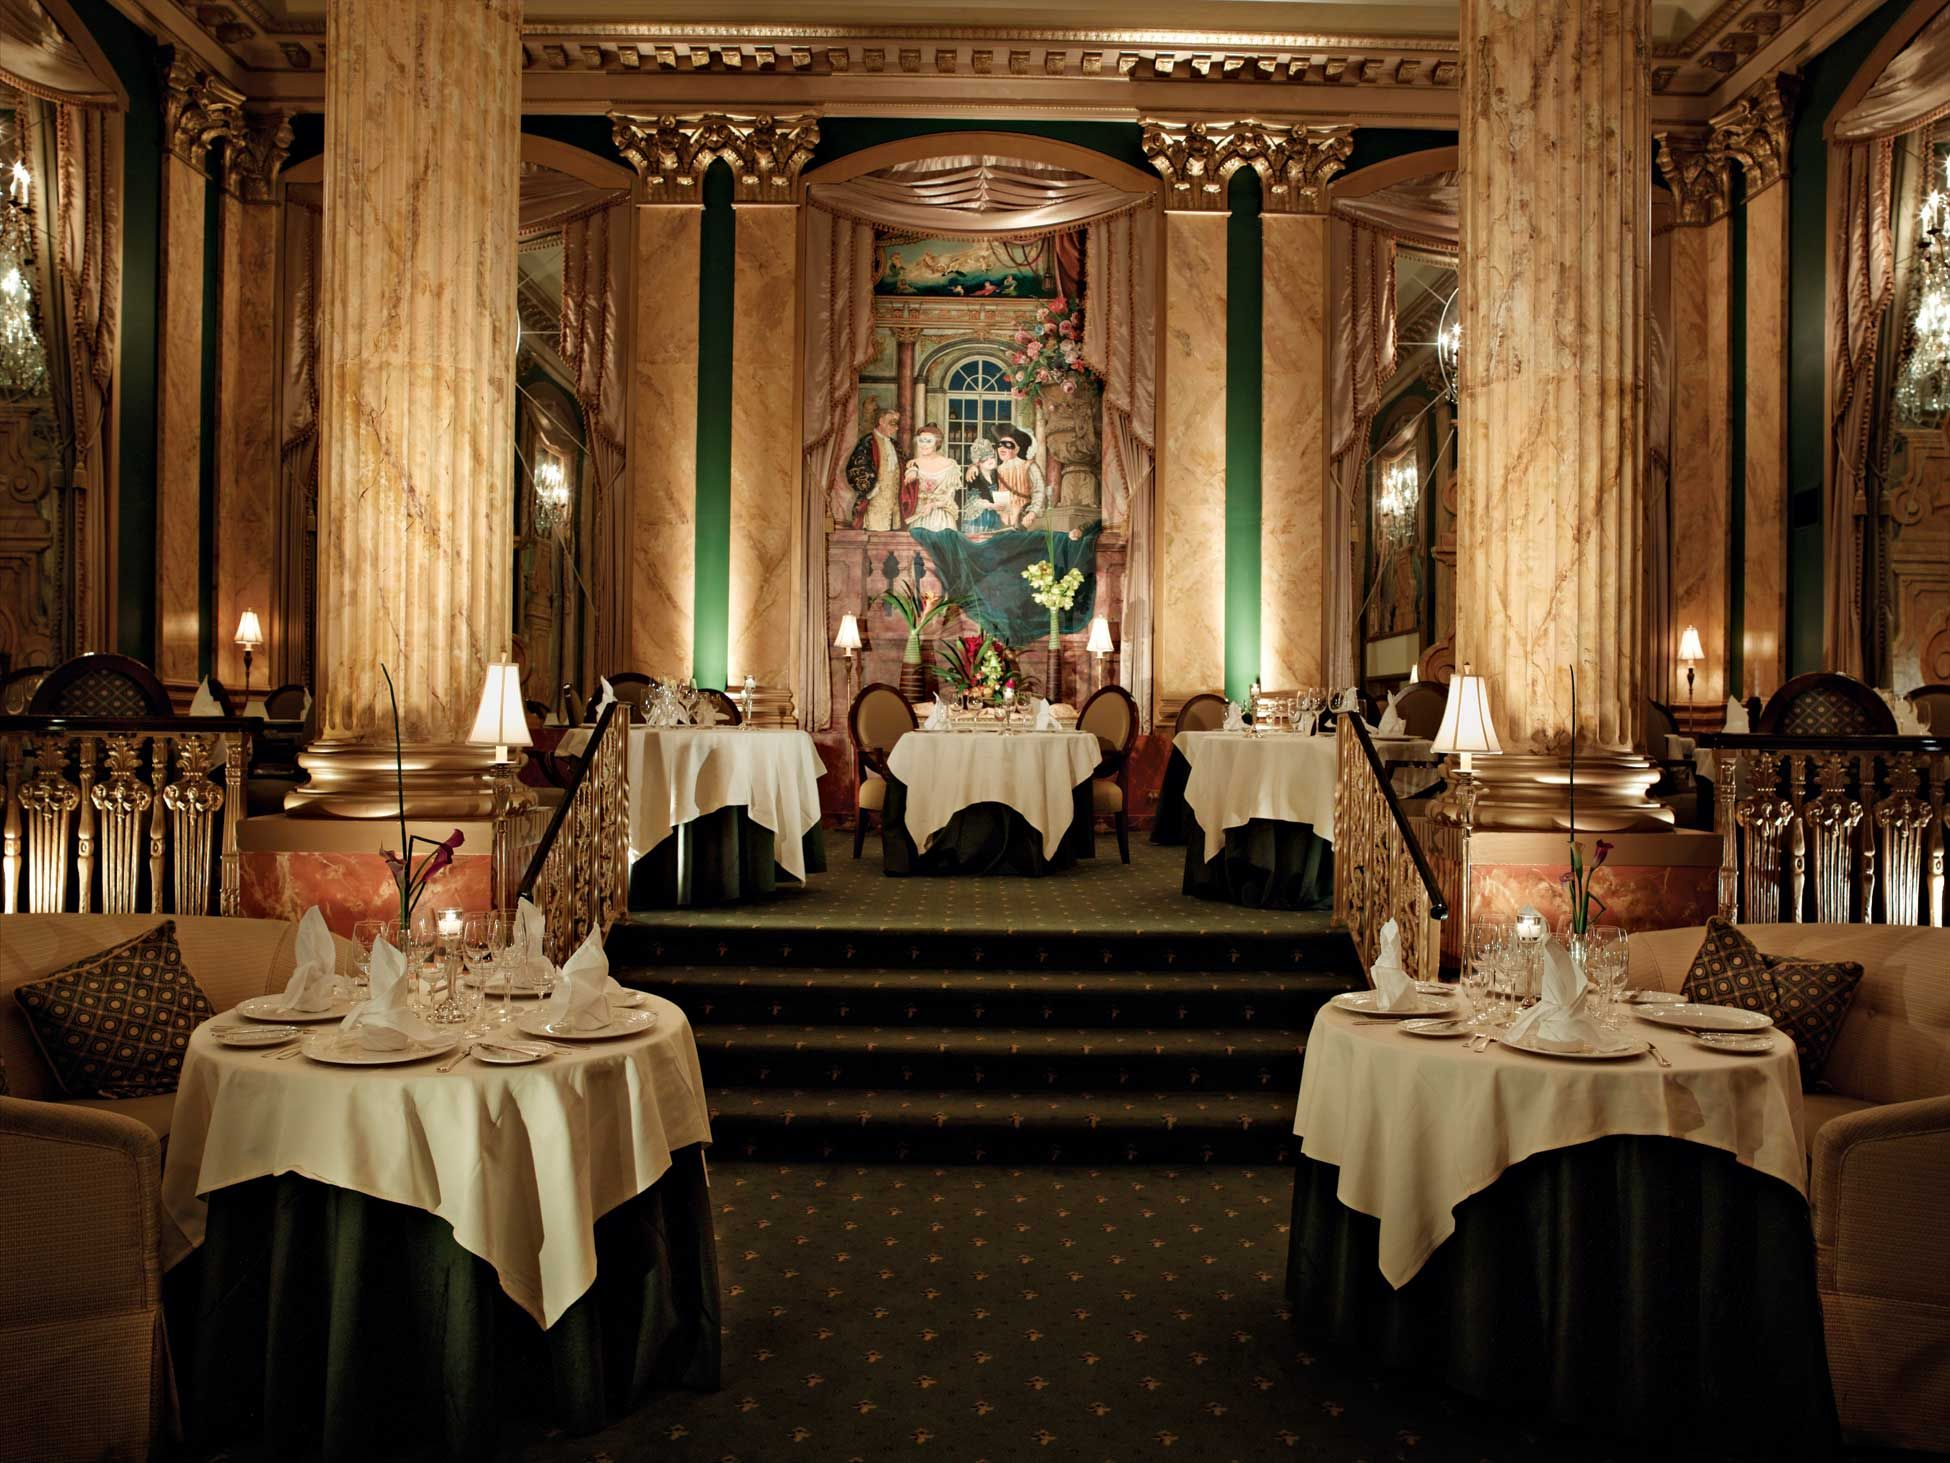 Chez Philippe The Peabody Memphis Signature Dining Room Forbes Four Star And Aaa Diamond Award Winning French Restaurant